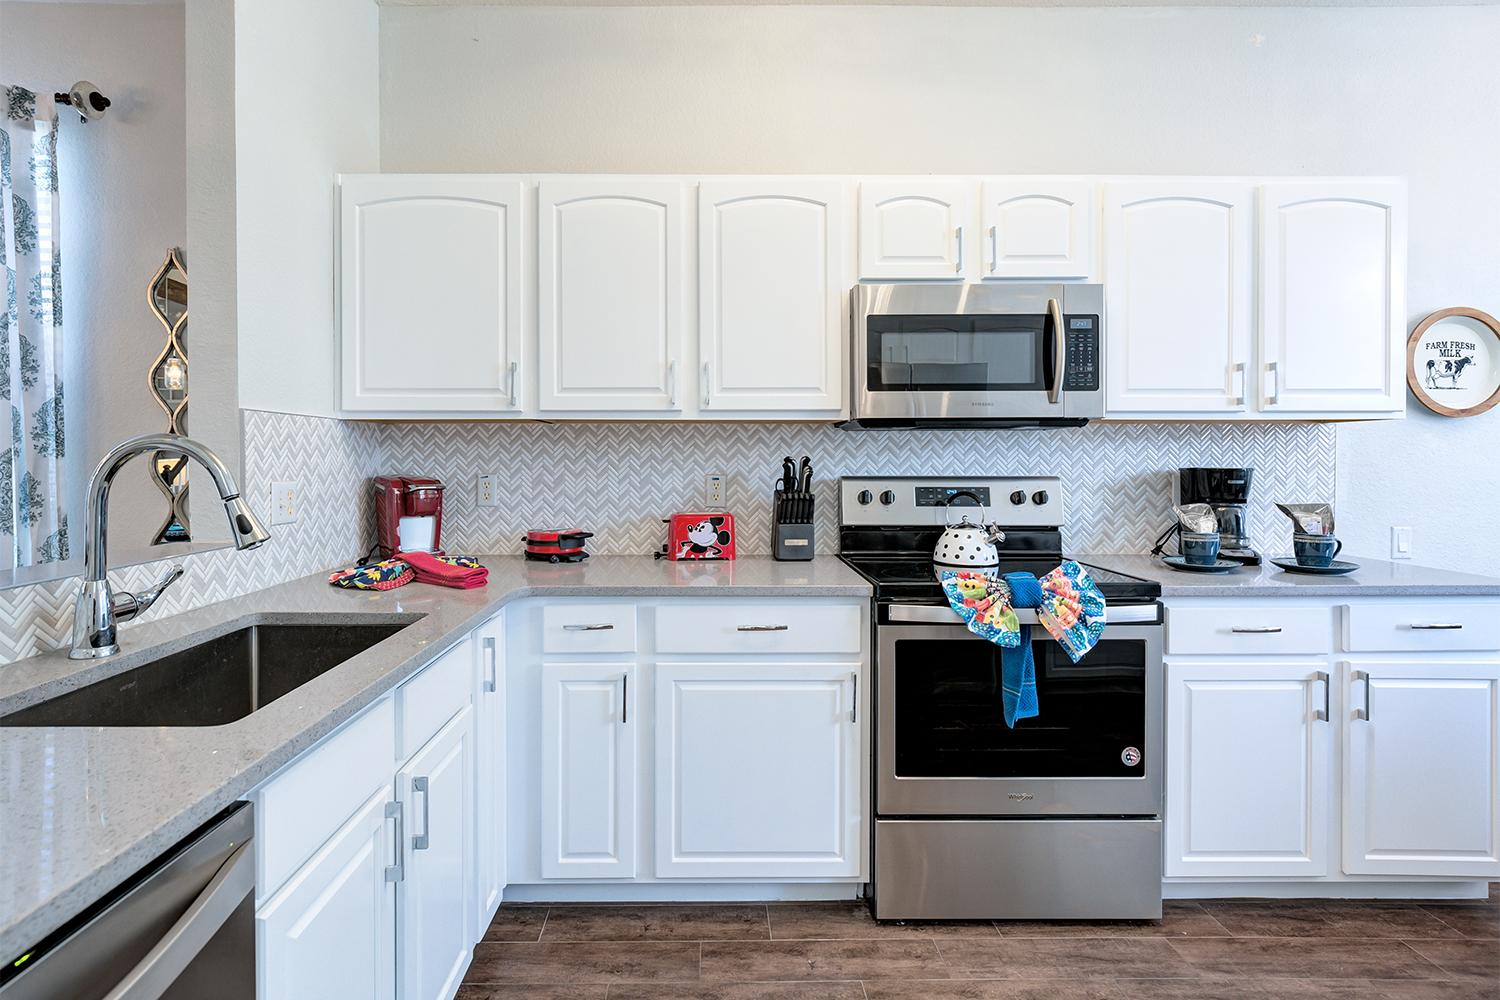 Fully equipped kitchen with quartz countertops, SS appliances and more